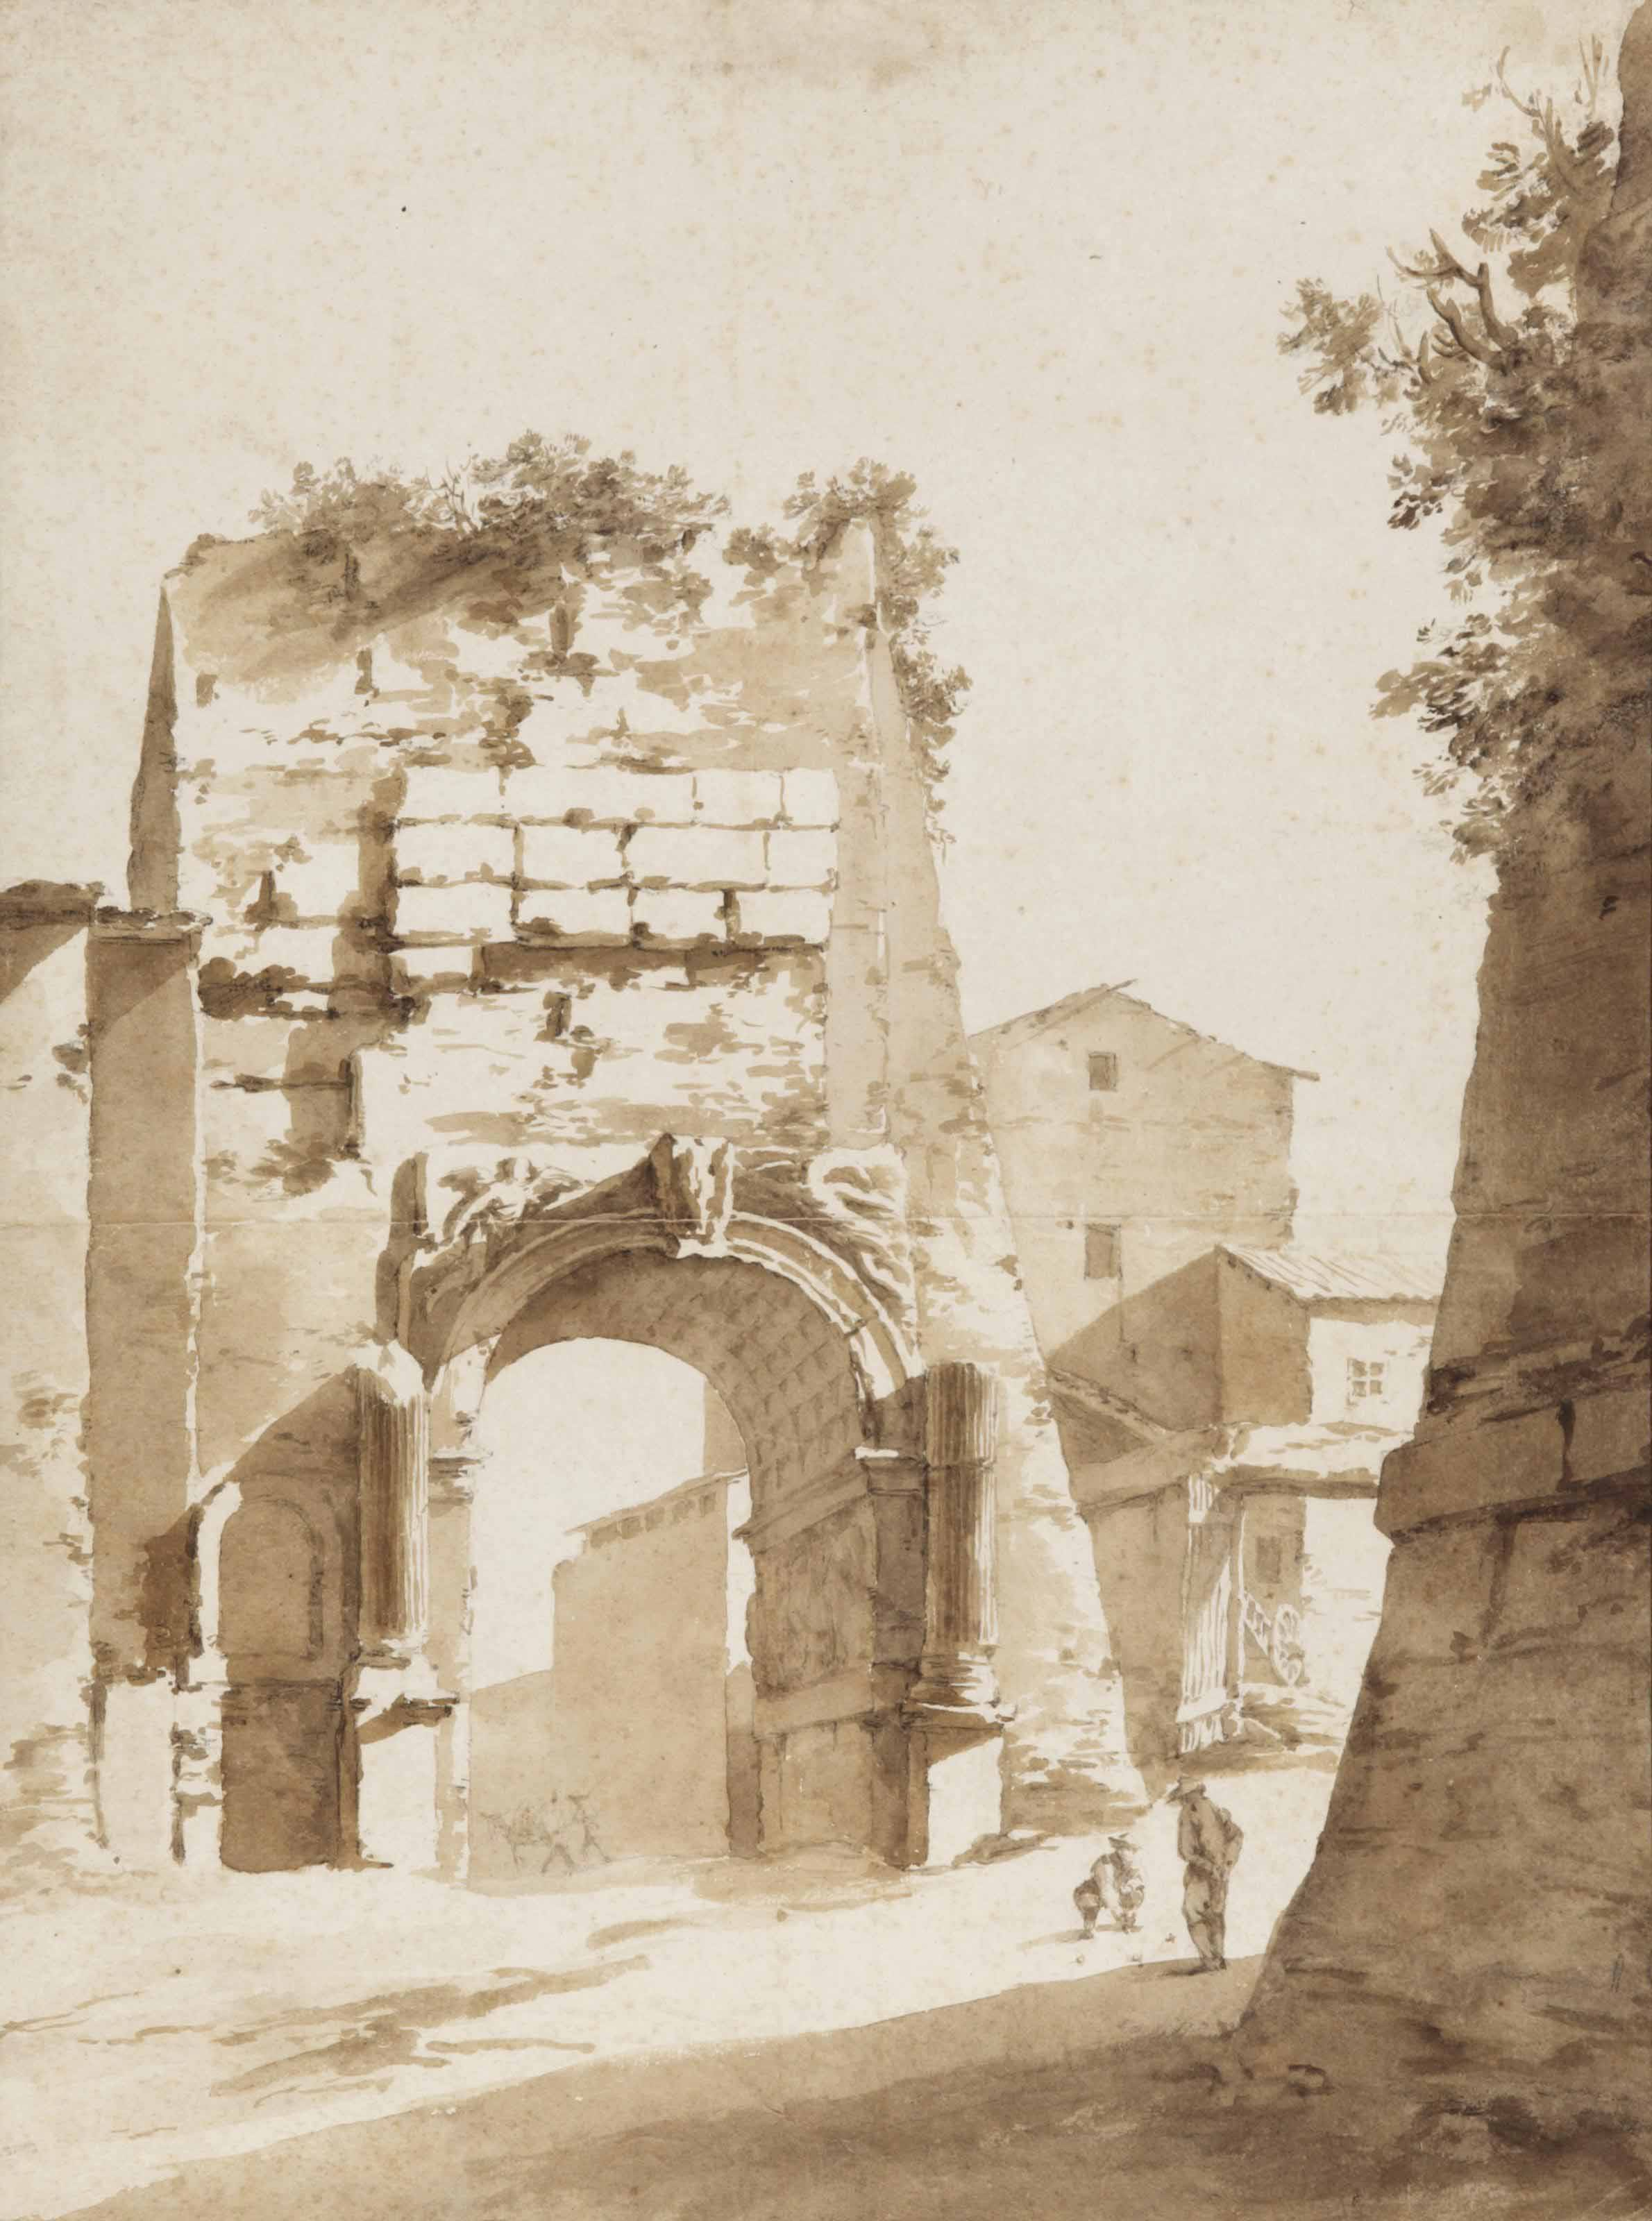 The Arch of Titus, Rome, after Jan Both